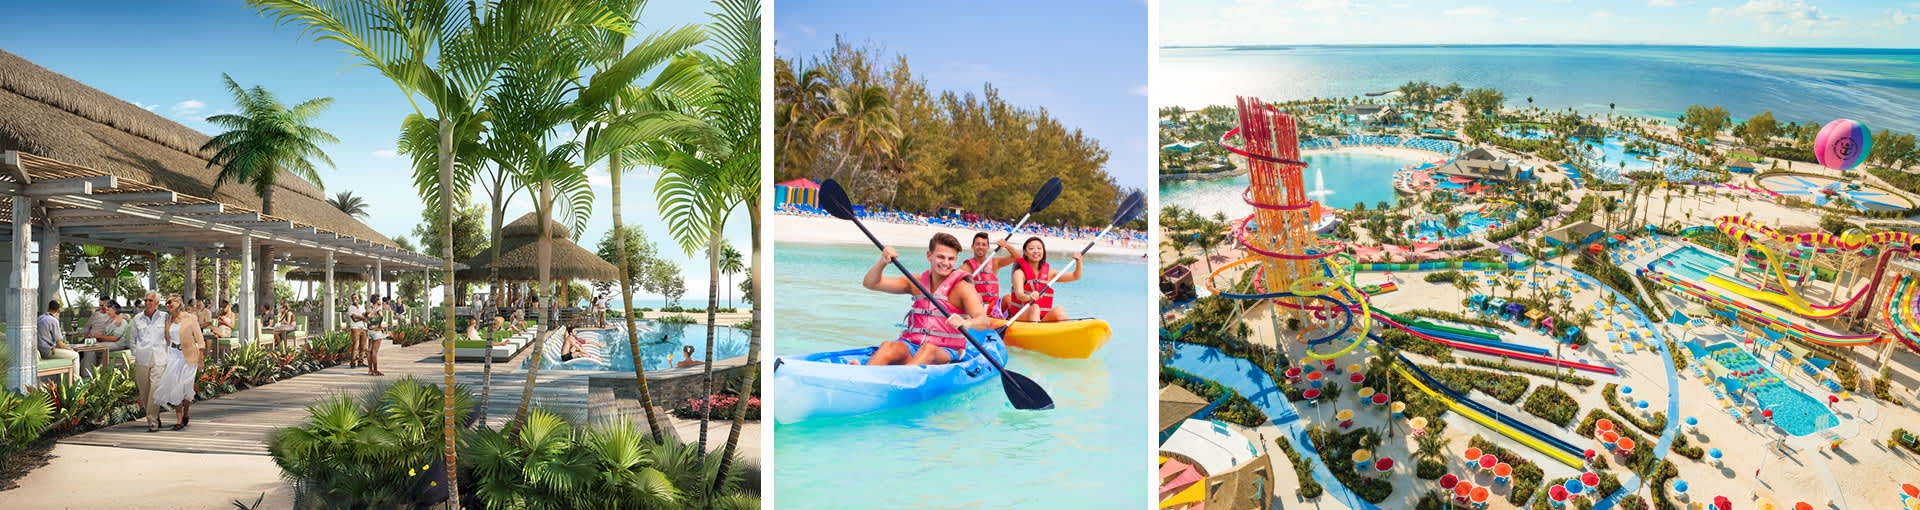 Highlights from Royal Caribbean's Perfect Day at CocoCay